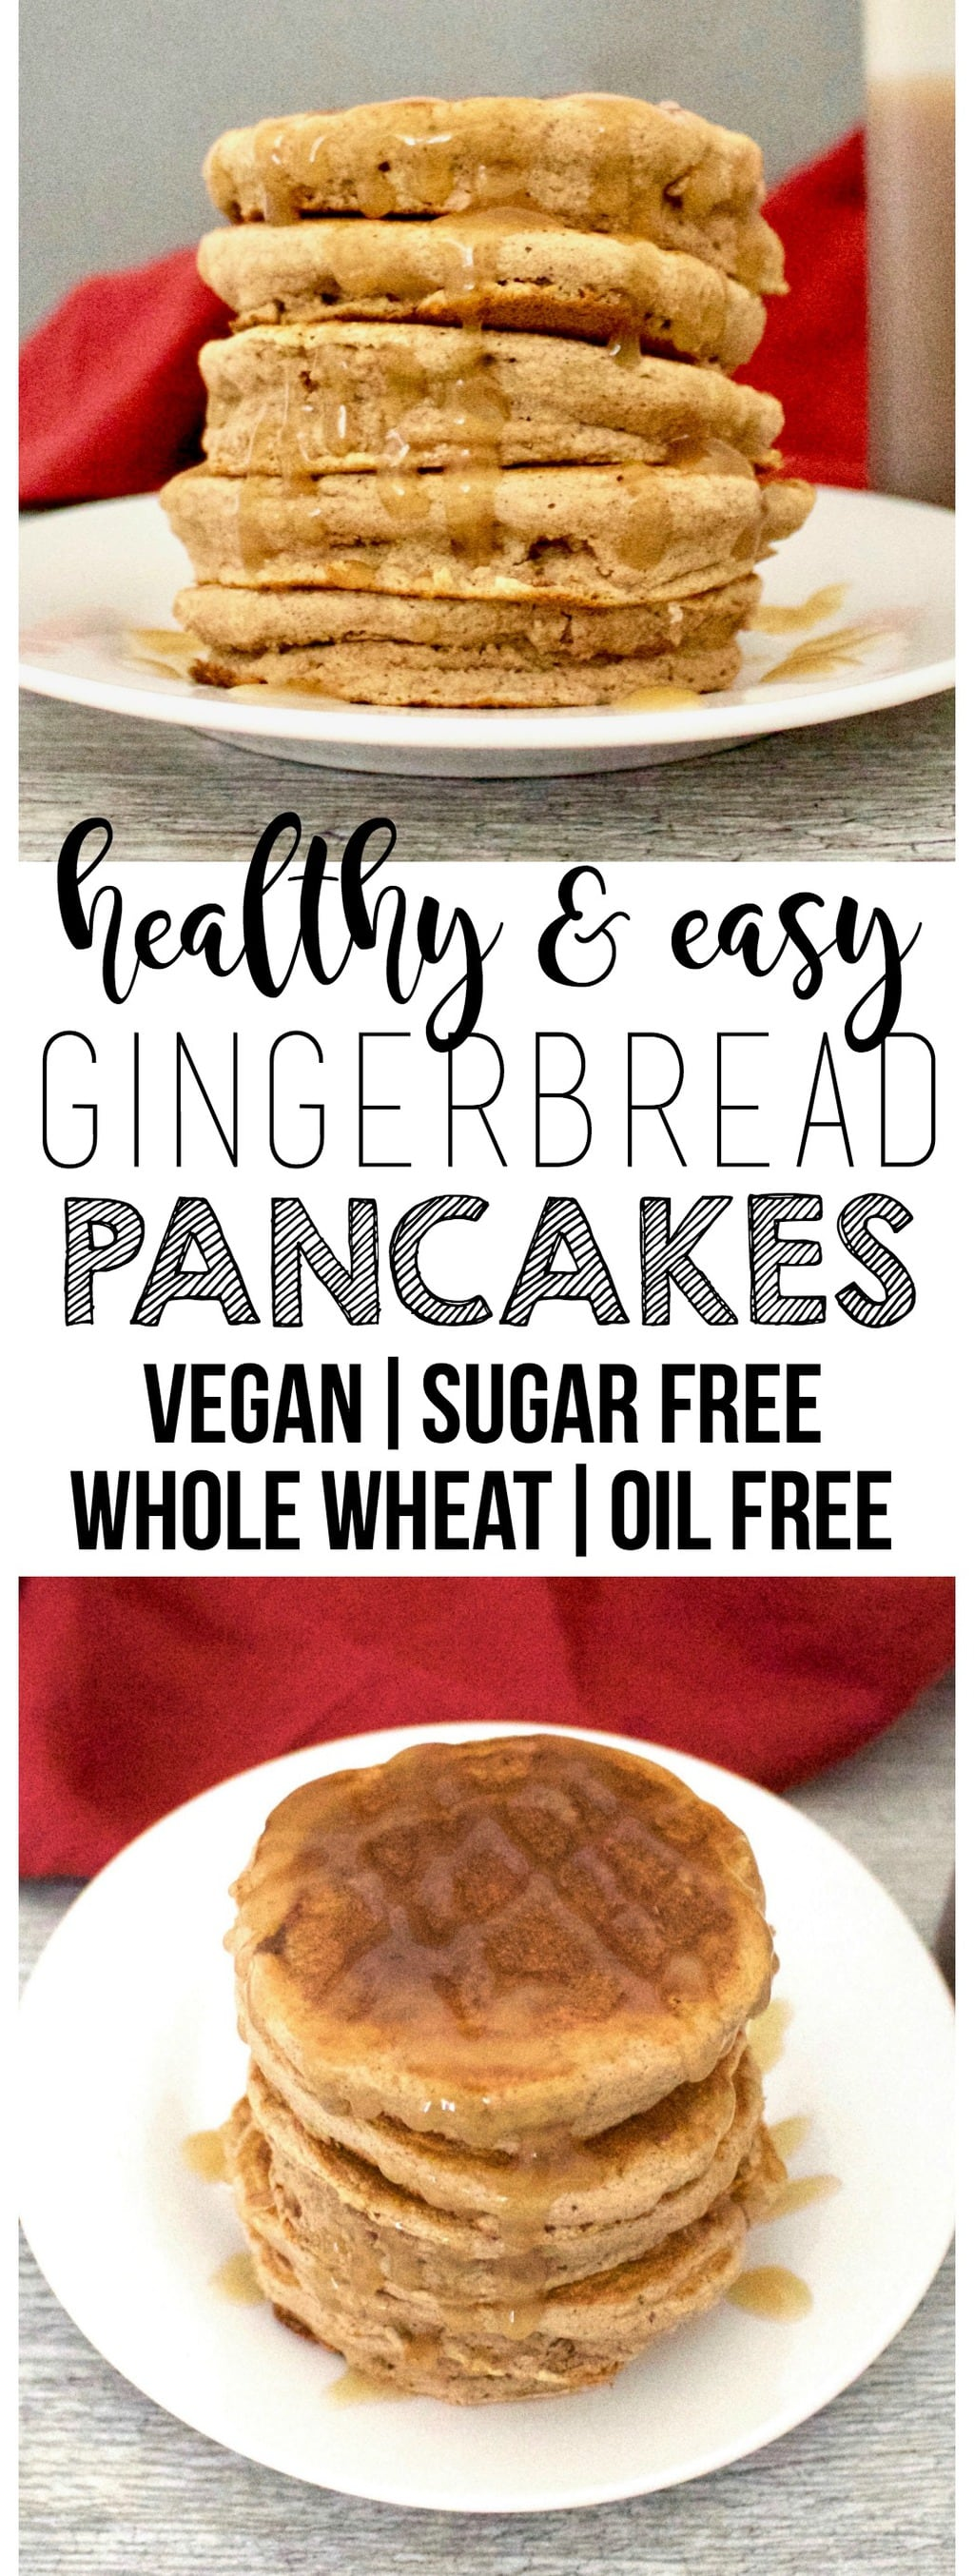 These DELICIOUS Vegan Gingerbread Pancakes are the perfect holiday breakfast! They are super healthy & nutritious - oil-free, sugar-free, and low-calorie too! Only 76 calories each.